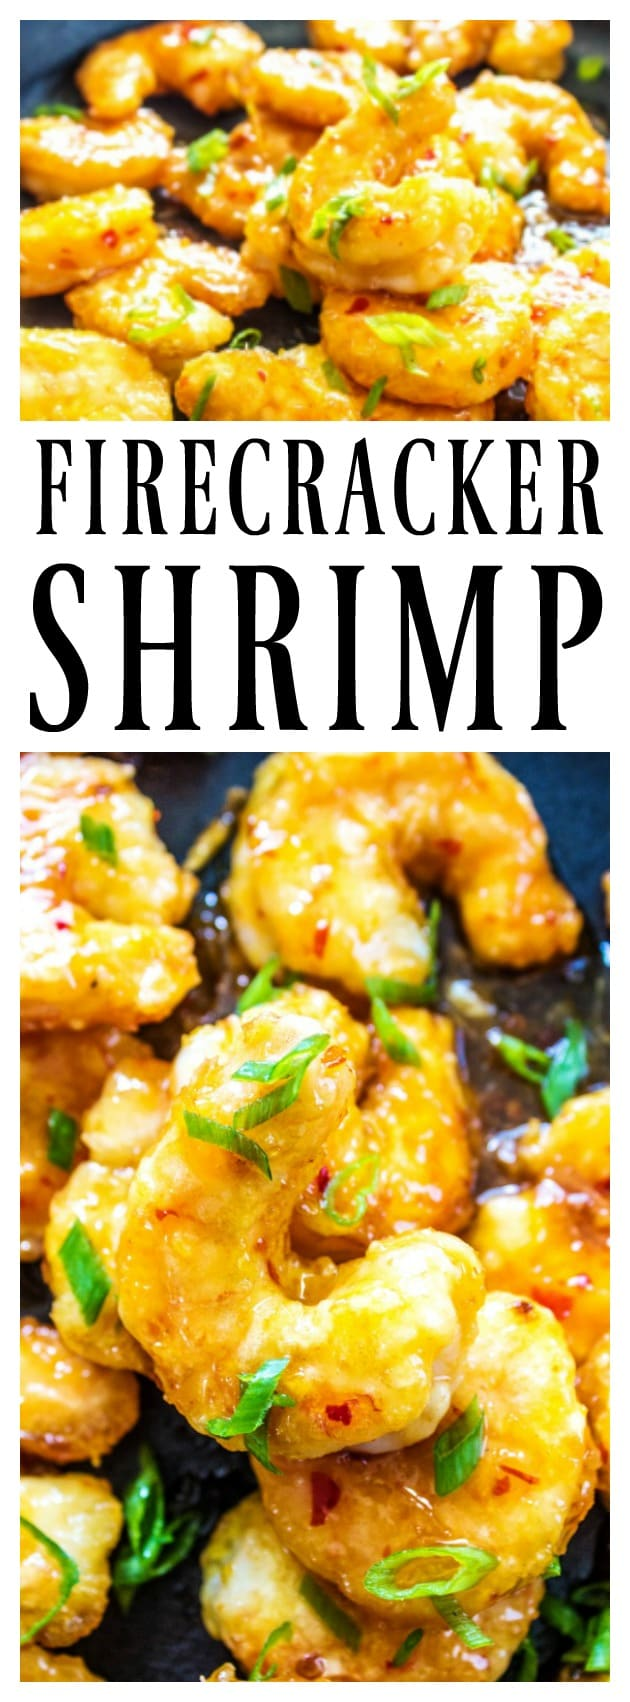 photos of firecracker shrimp in pan